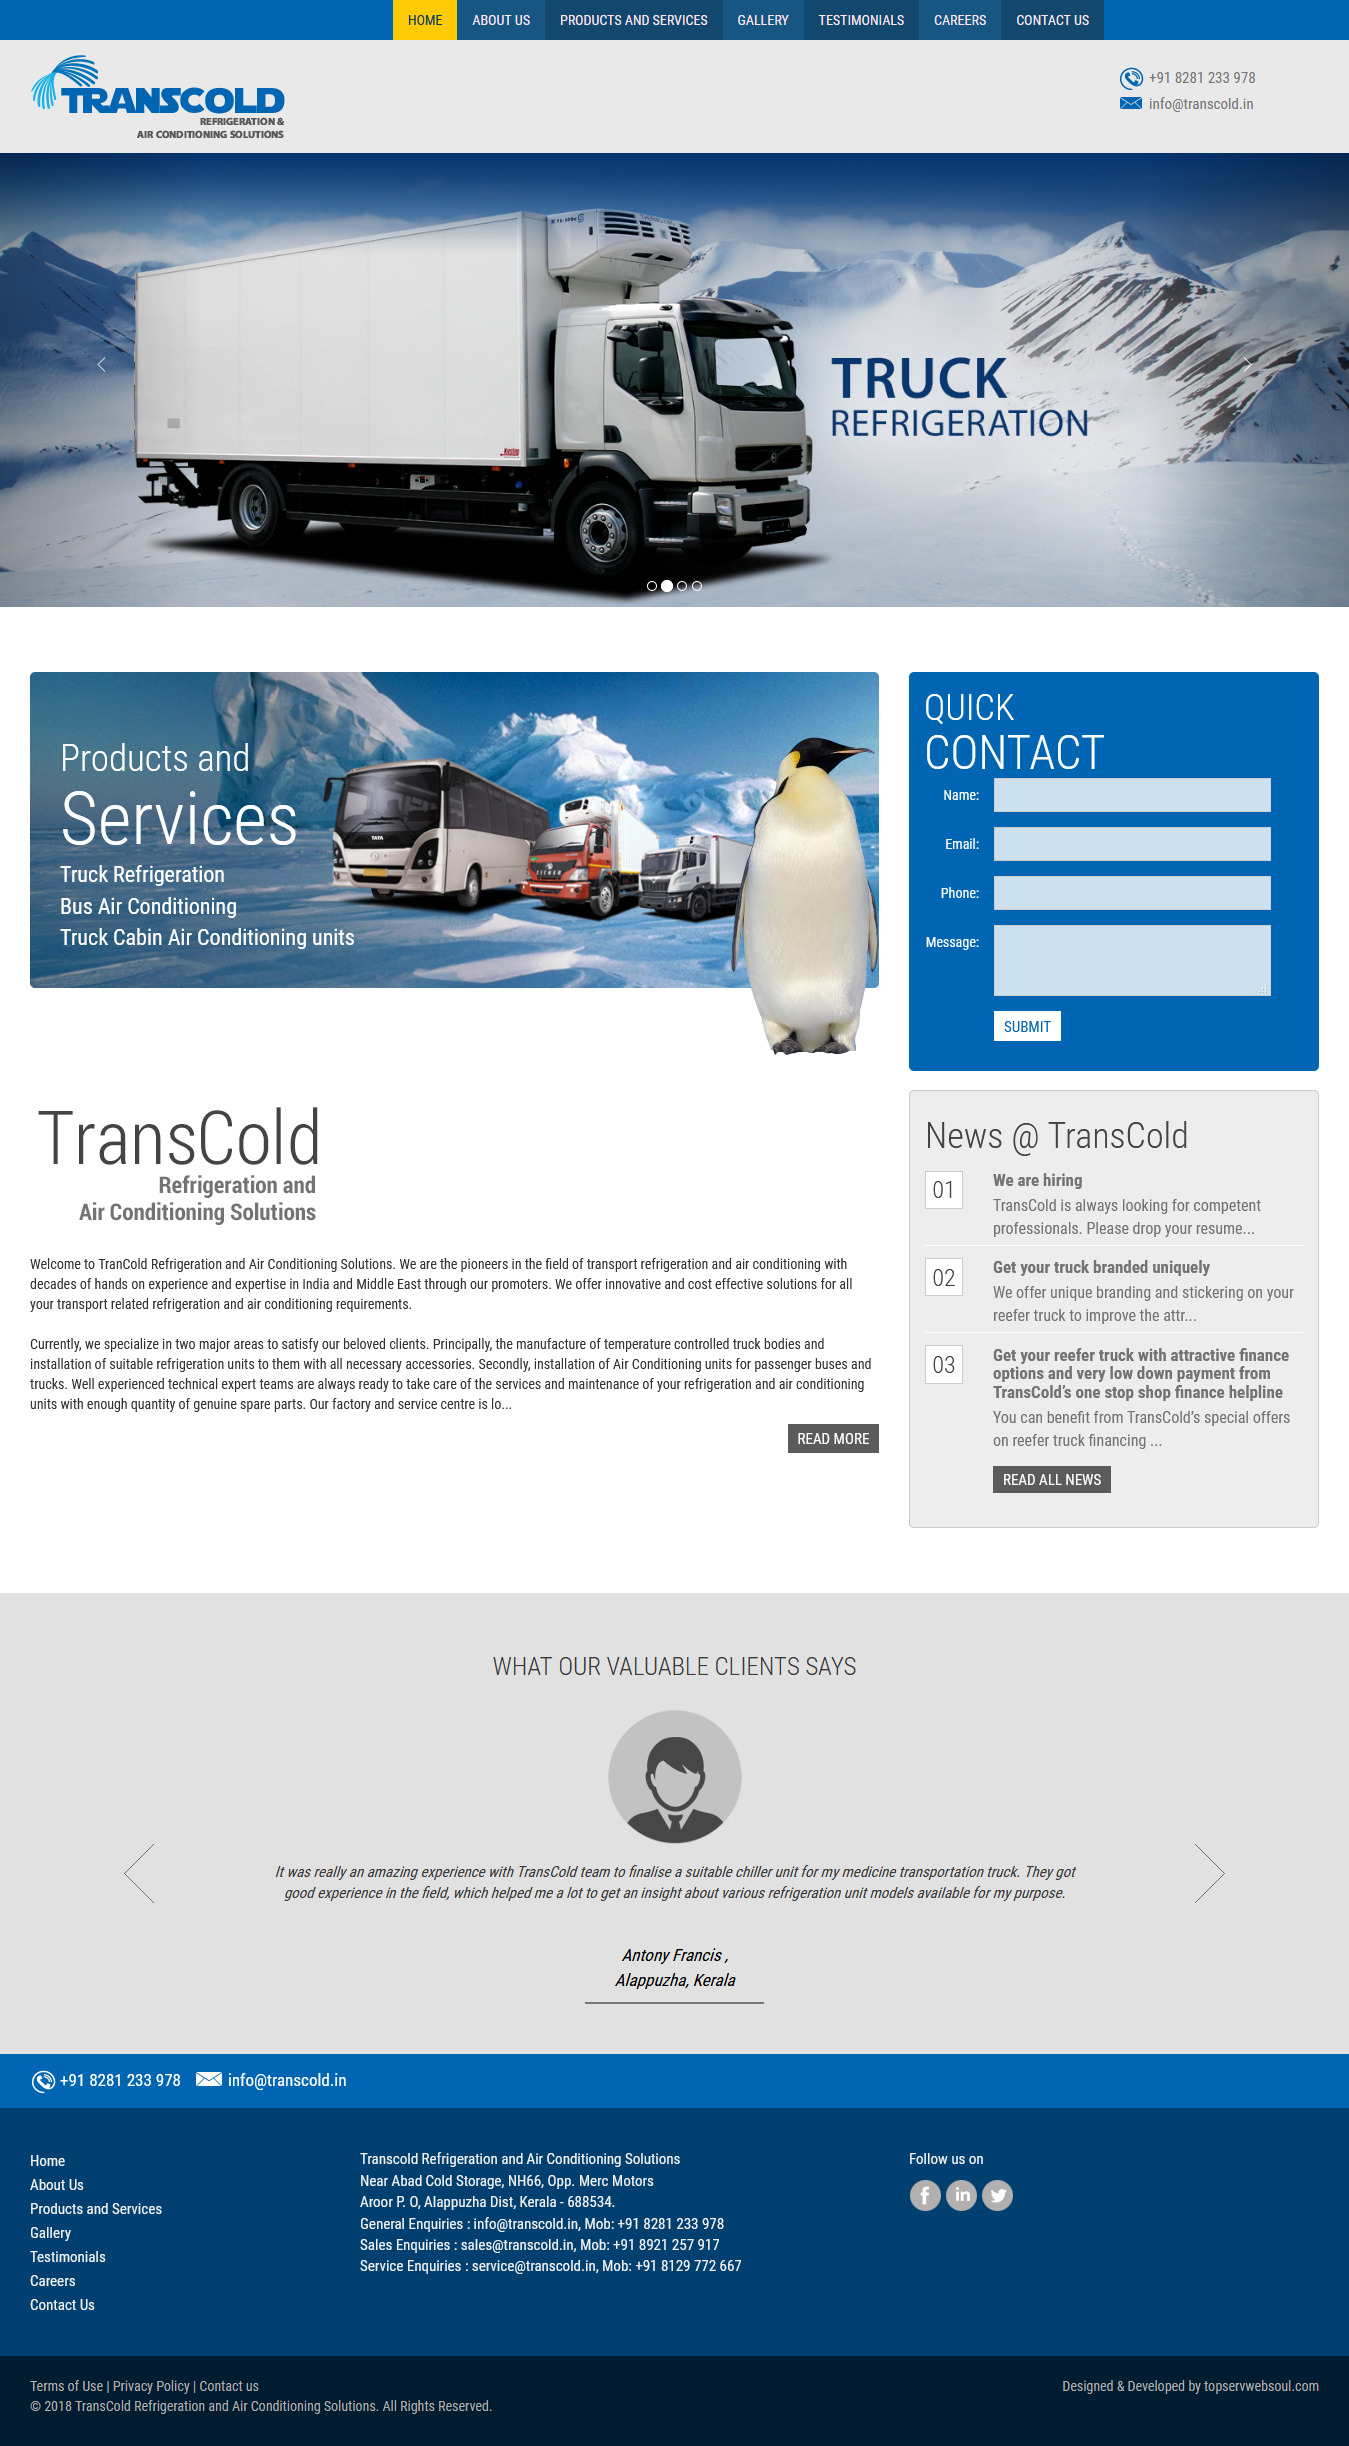 Transcold Refrigeration Air Conditioning Solutions